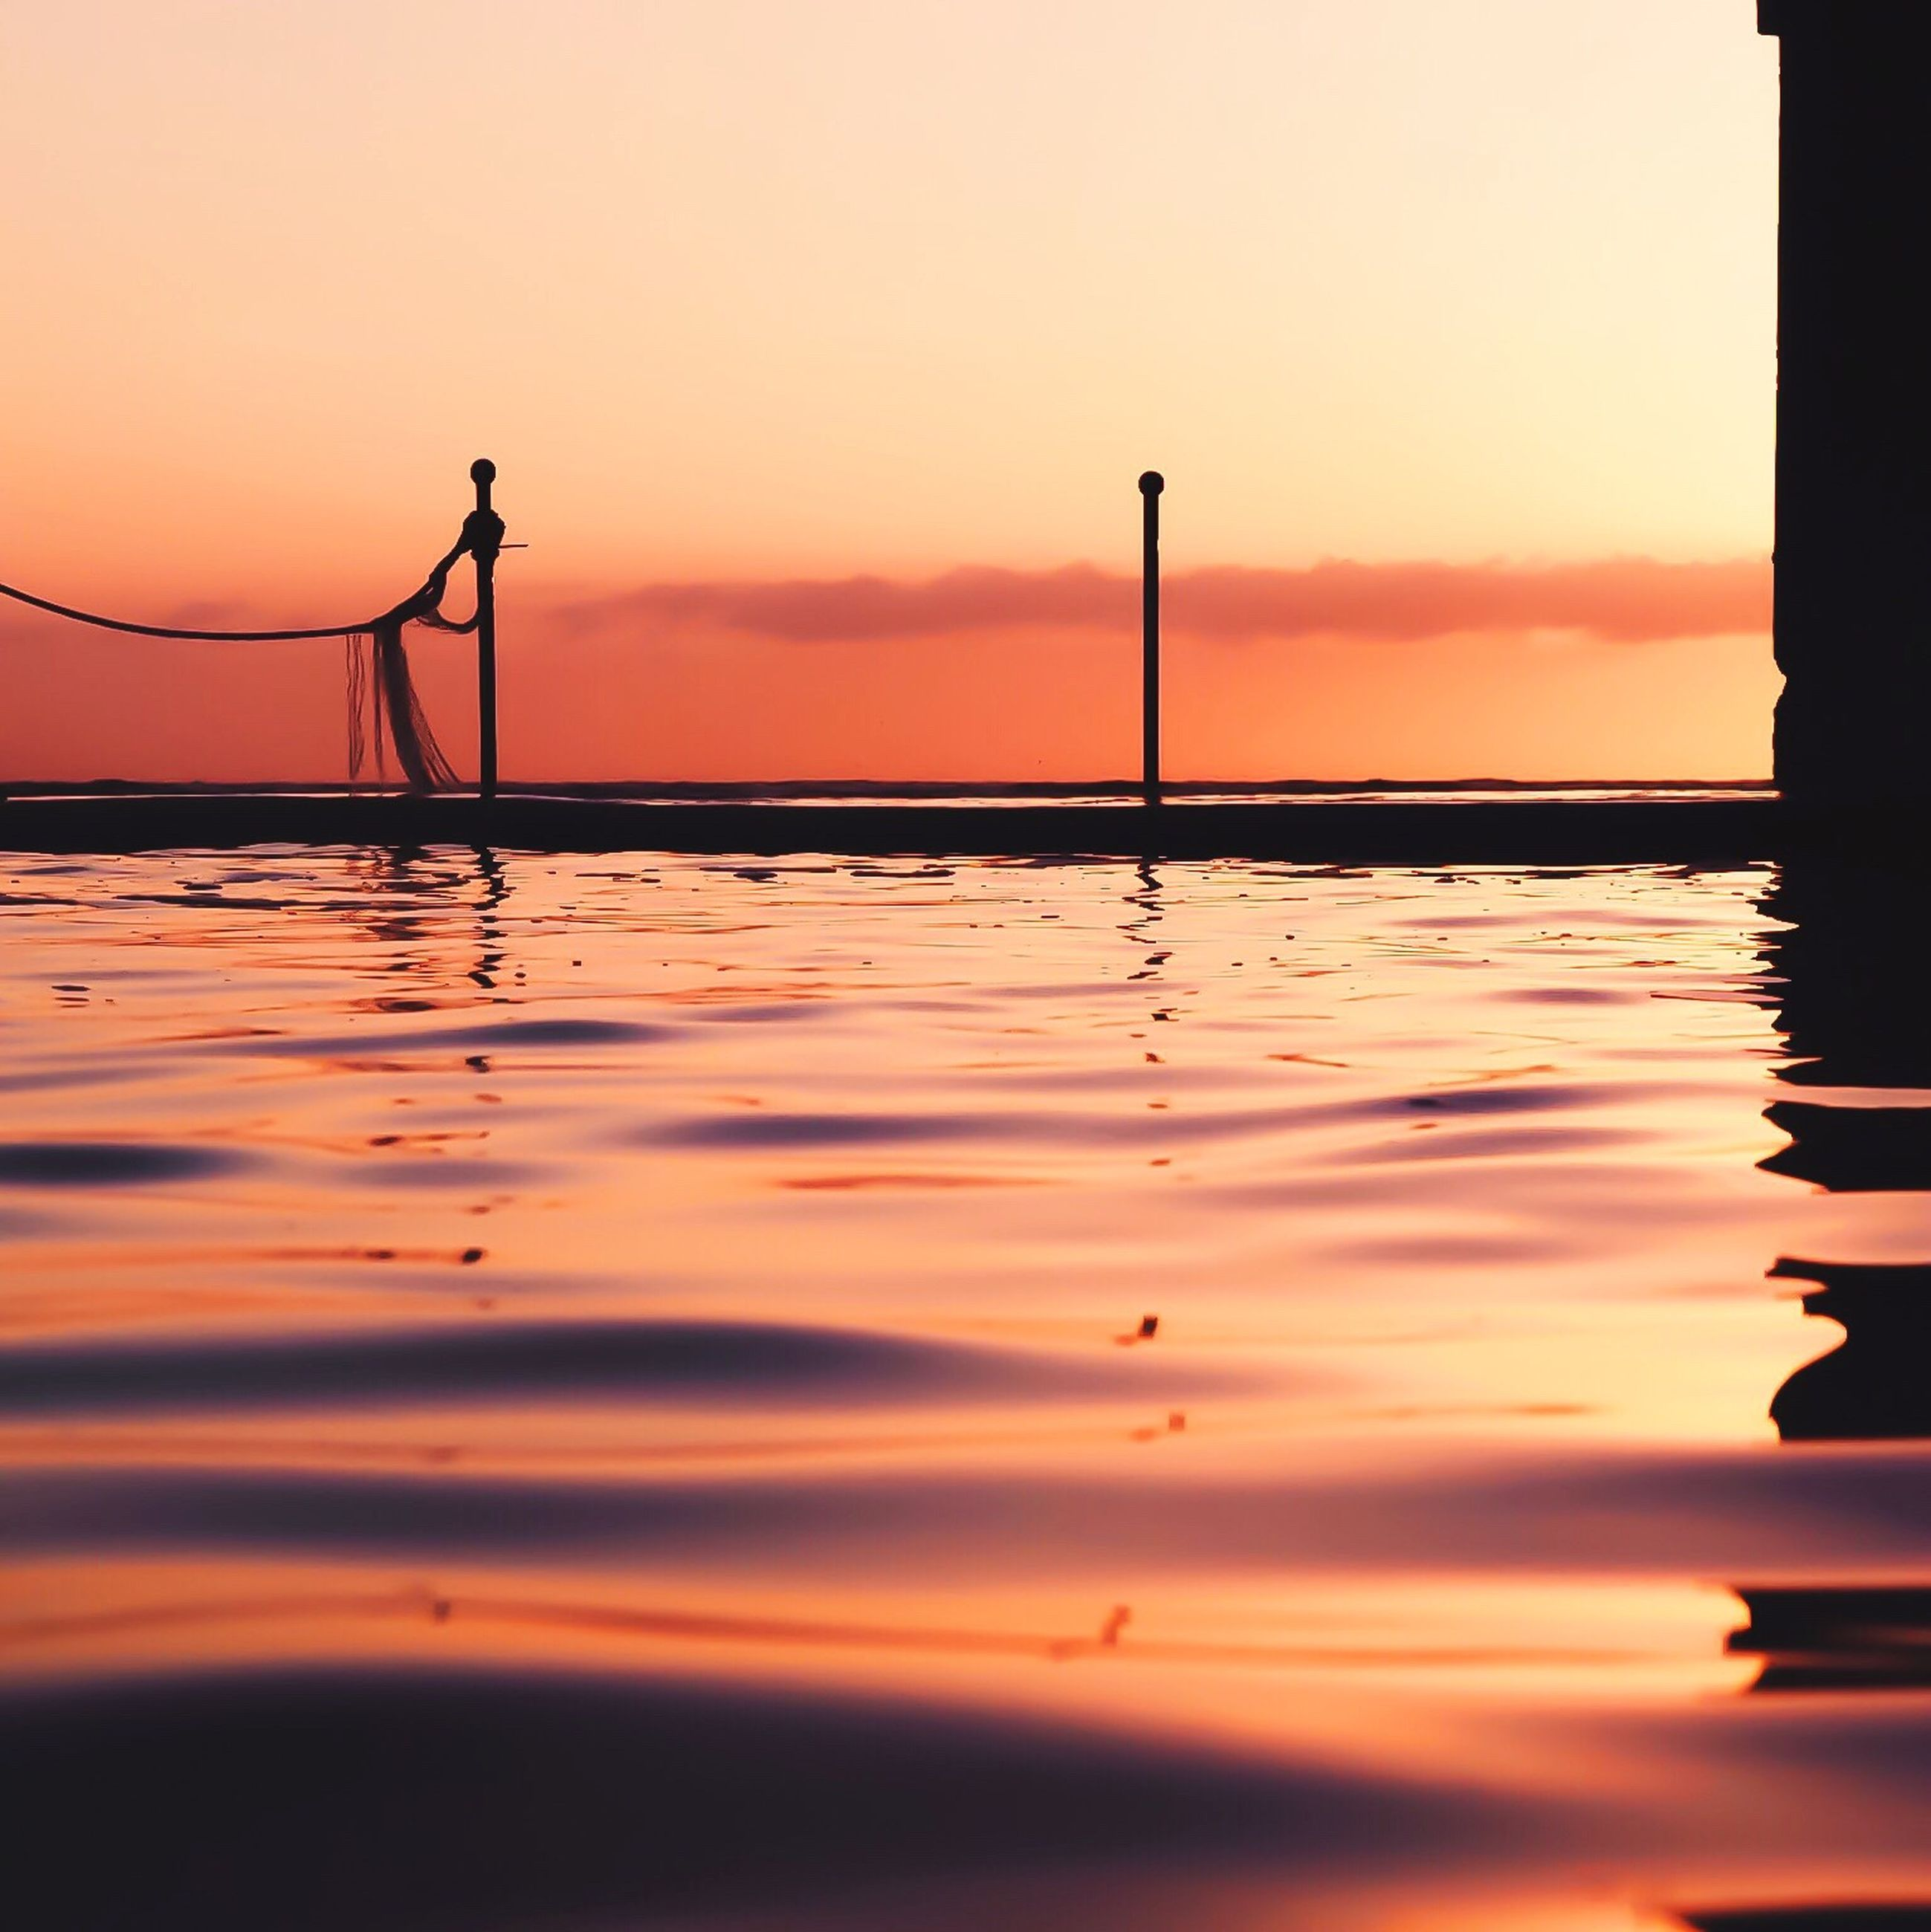 sunset, water, reflection, sea, beauty in nature, nature, no people, tranquil scene, scenics, outdoors, sky, tranquility, day